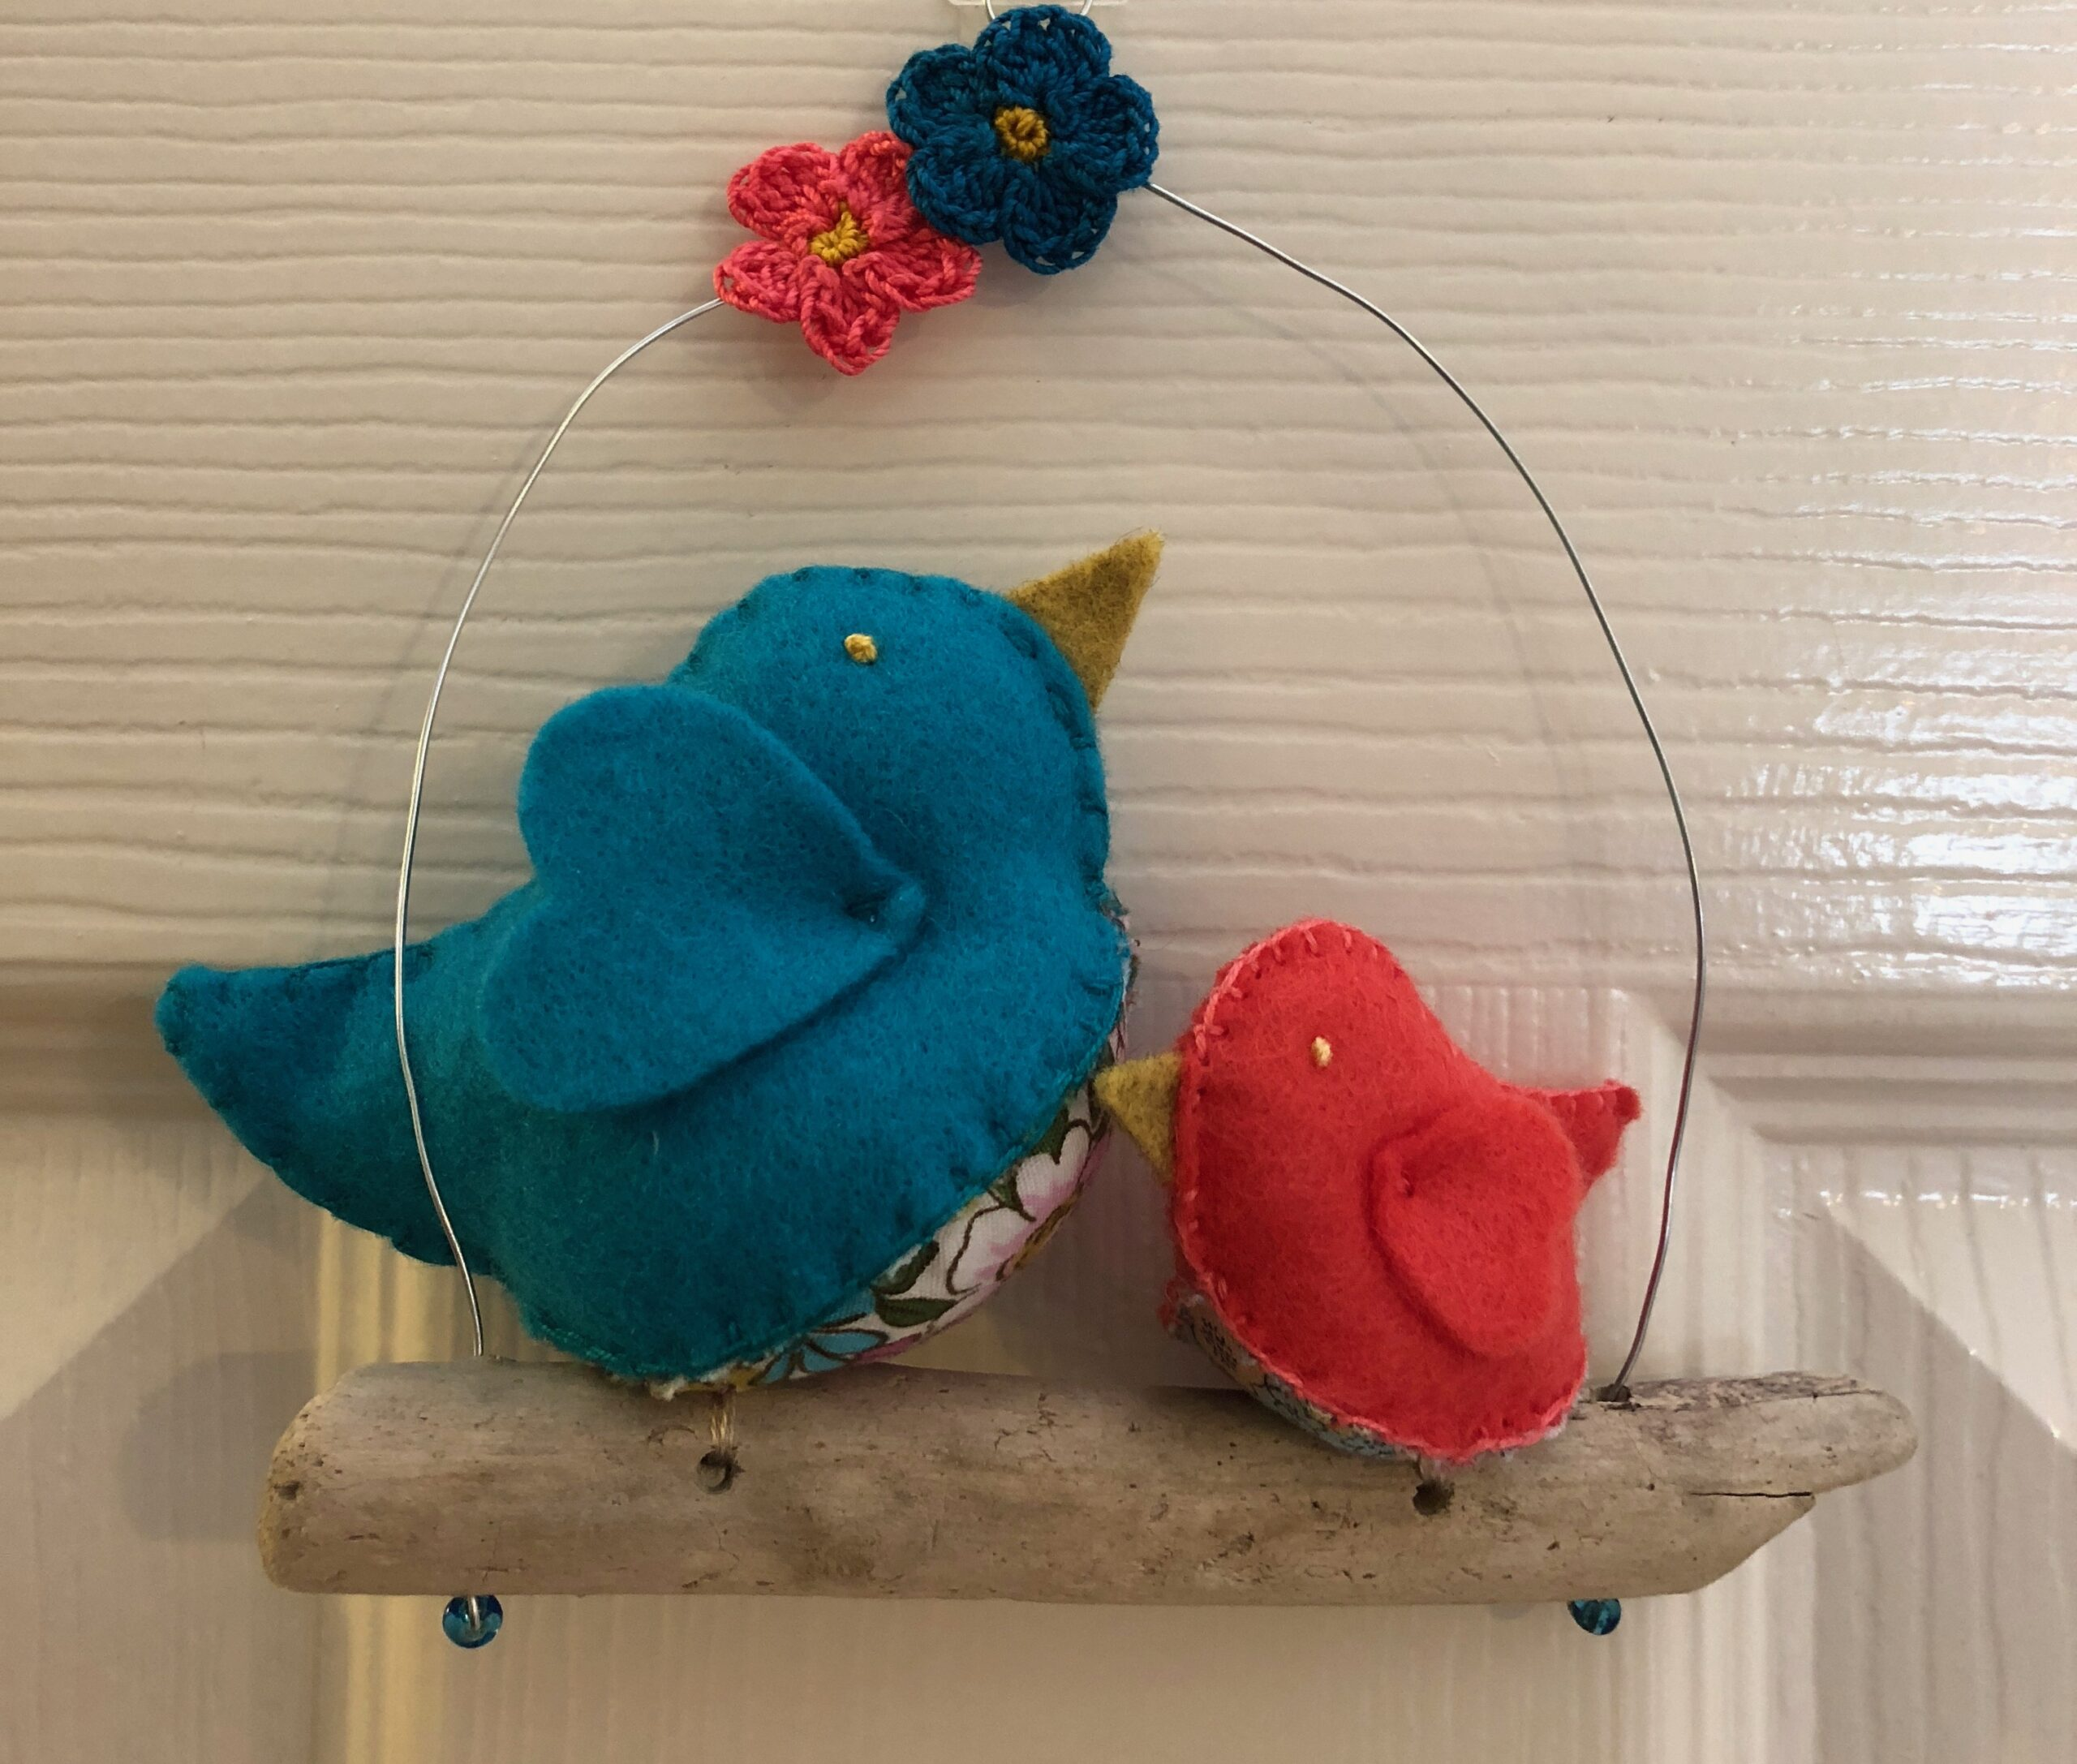 'Tweet love' in Turquoise and coral.